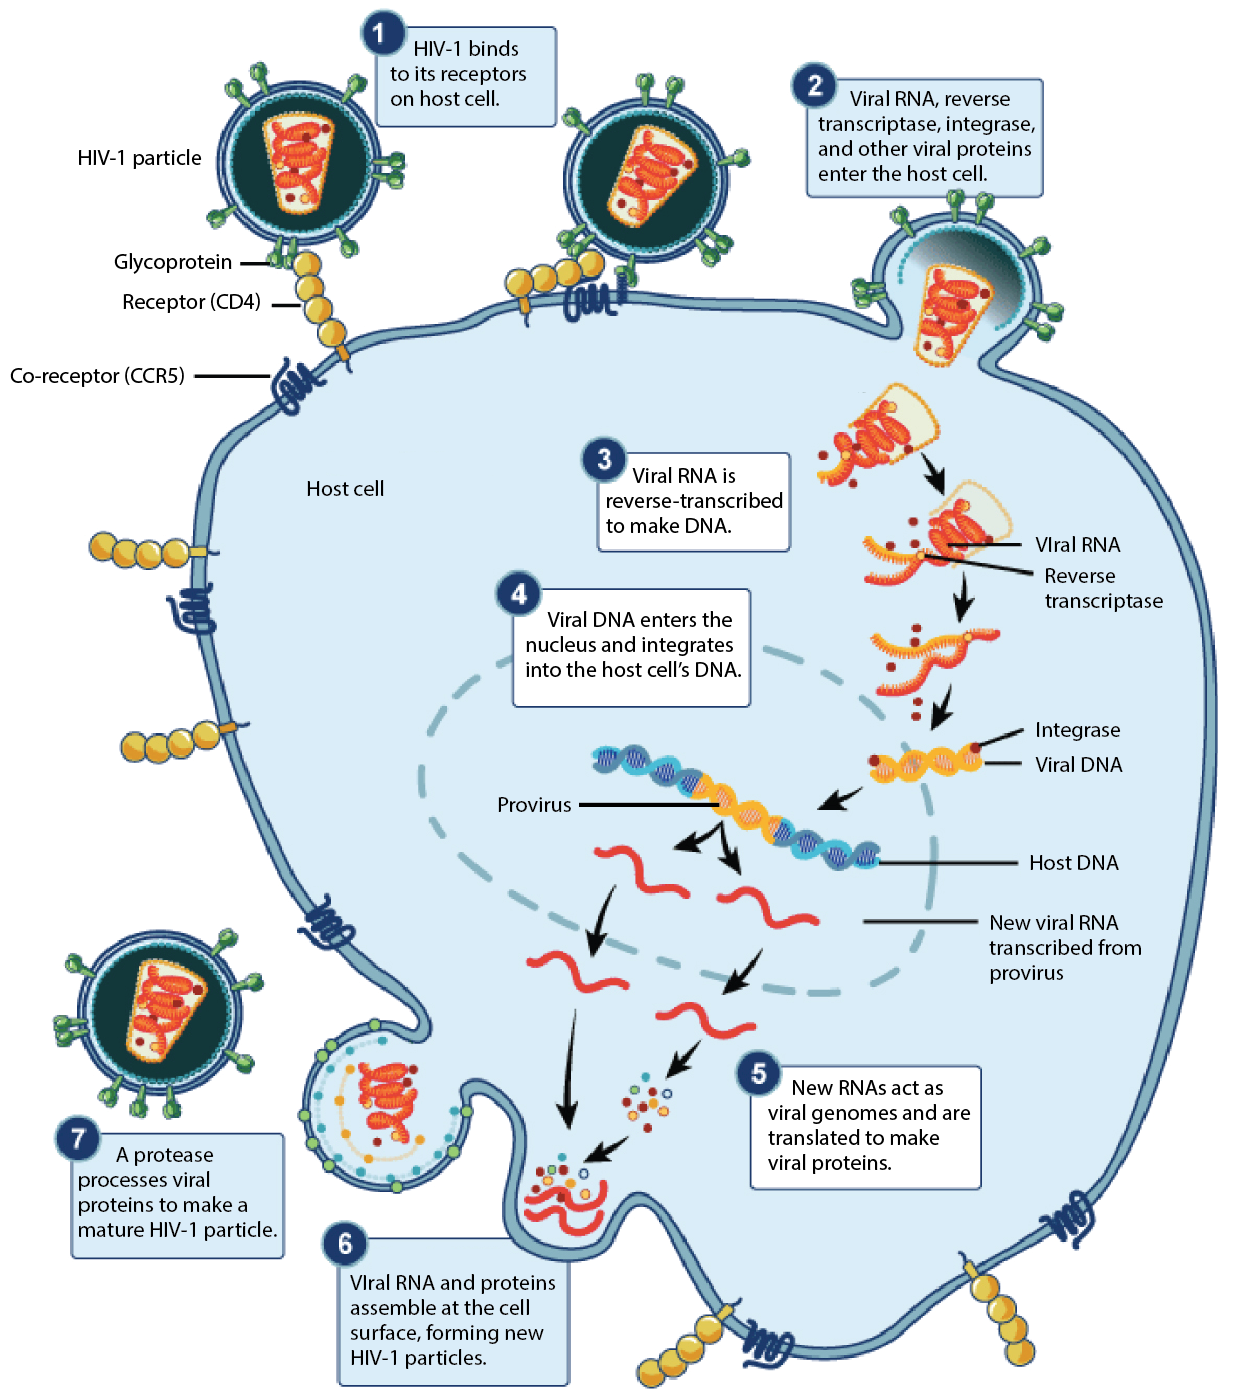 The Life Cycle of Viruses with Prokaryote Hosts